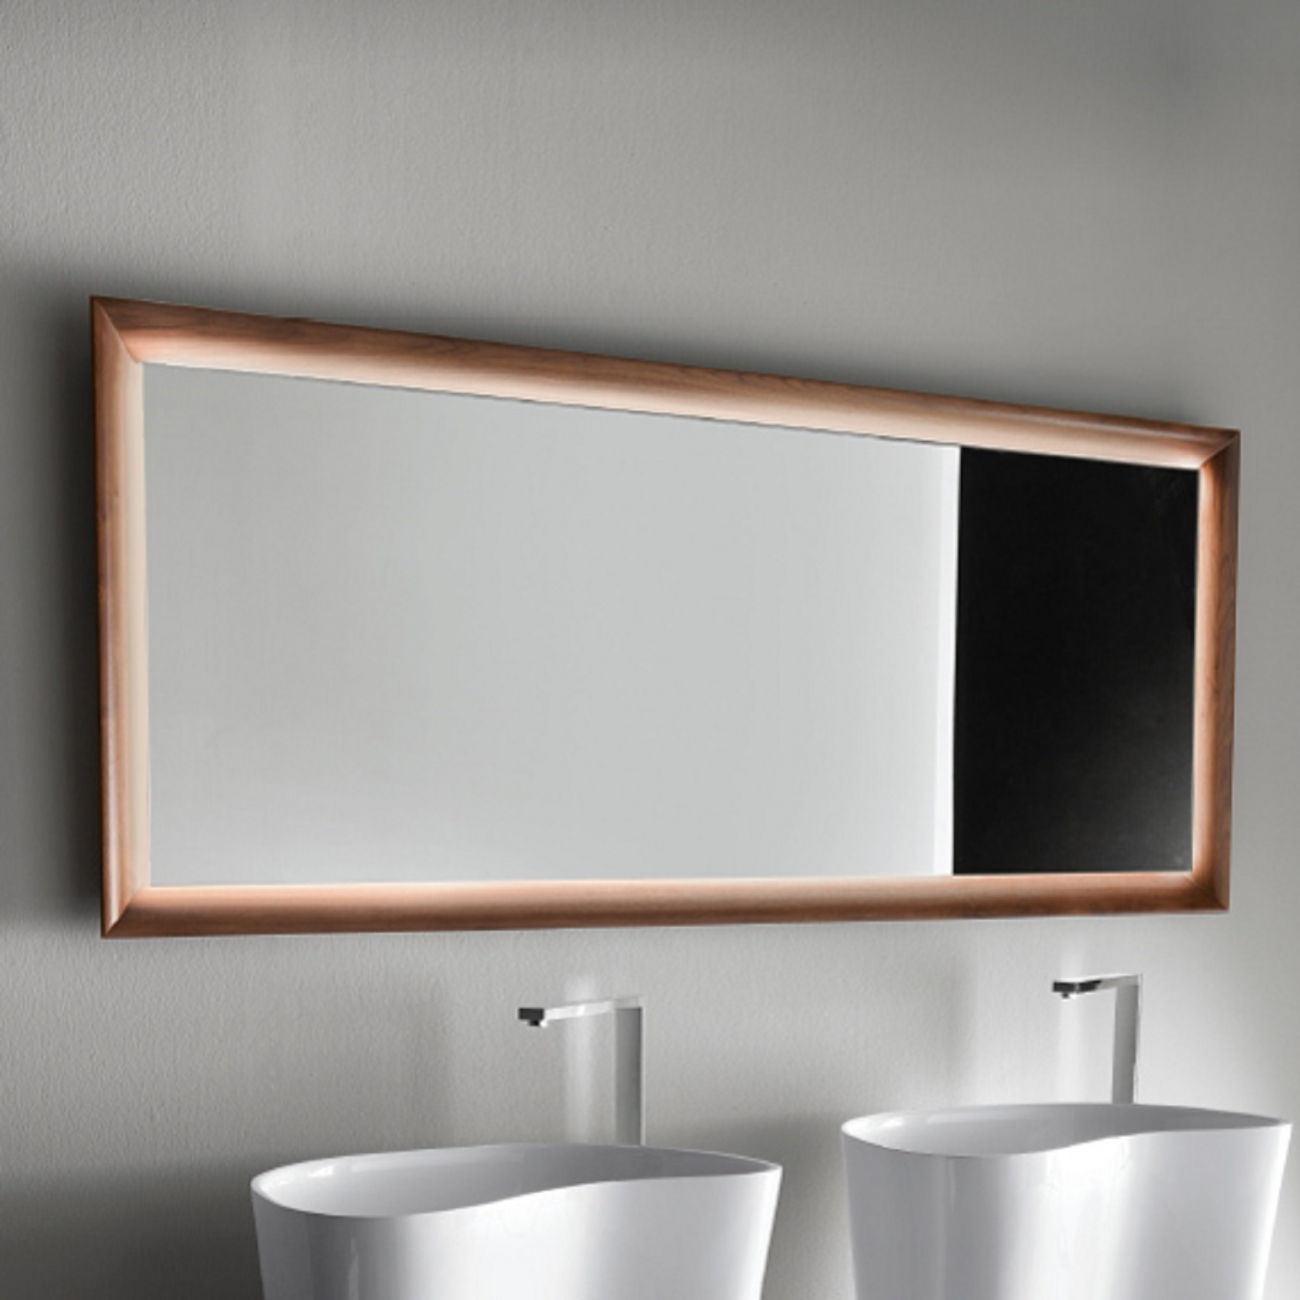 FALPER VIAVENETO WOOD FRAME MIRRORS - TattaHome